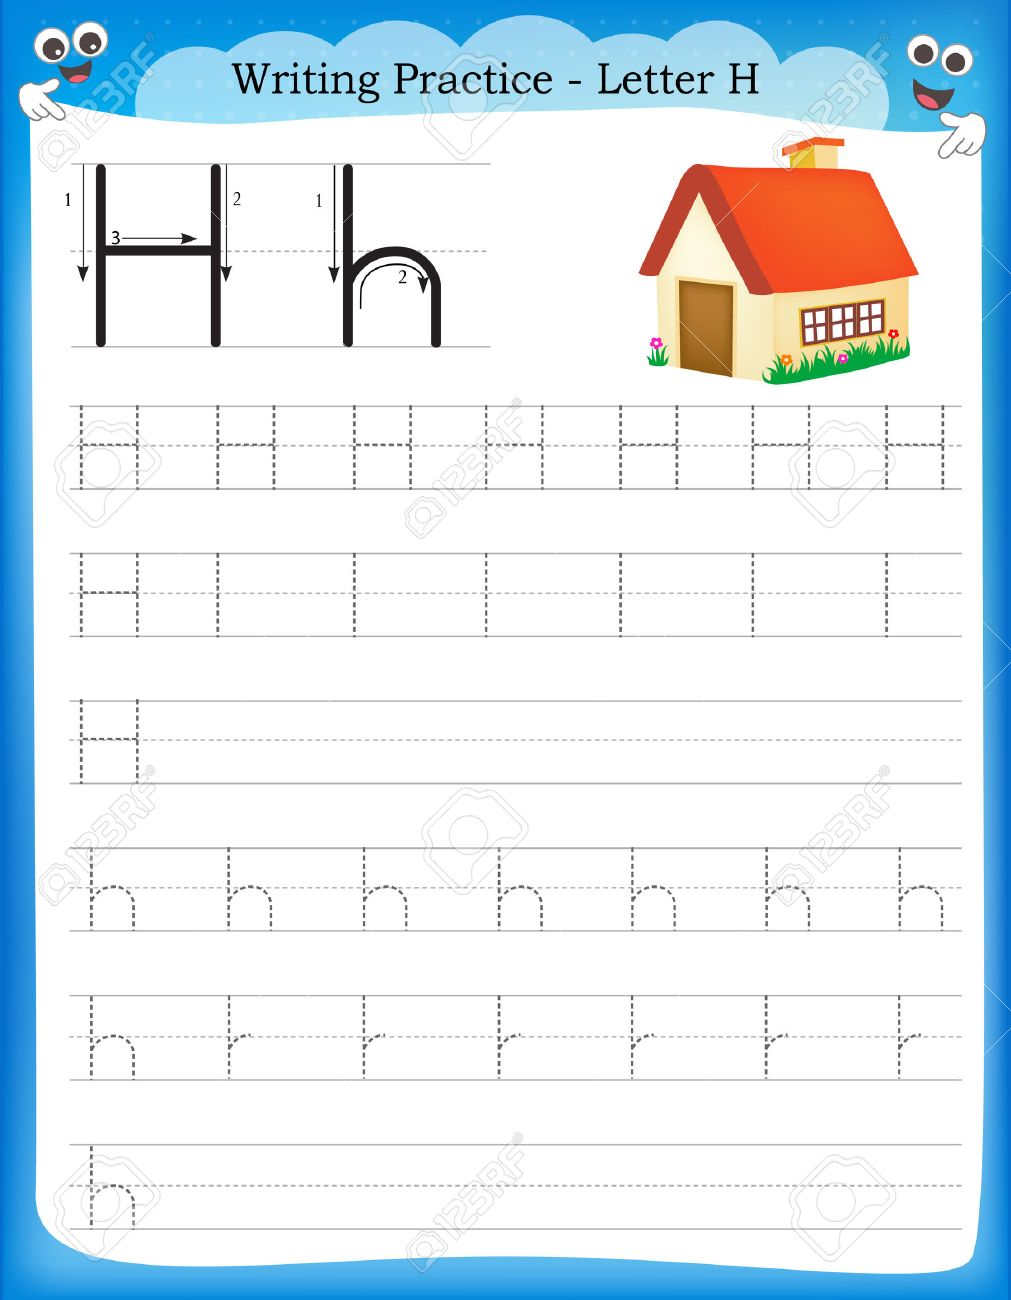 Vector   Writing Practice Letter H Printable Worksheet For Preschool /  Kindergarten Kids To Improve Basic Writing Skills